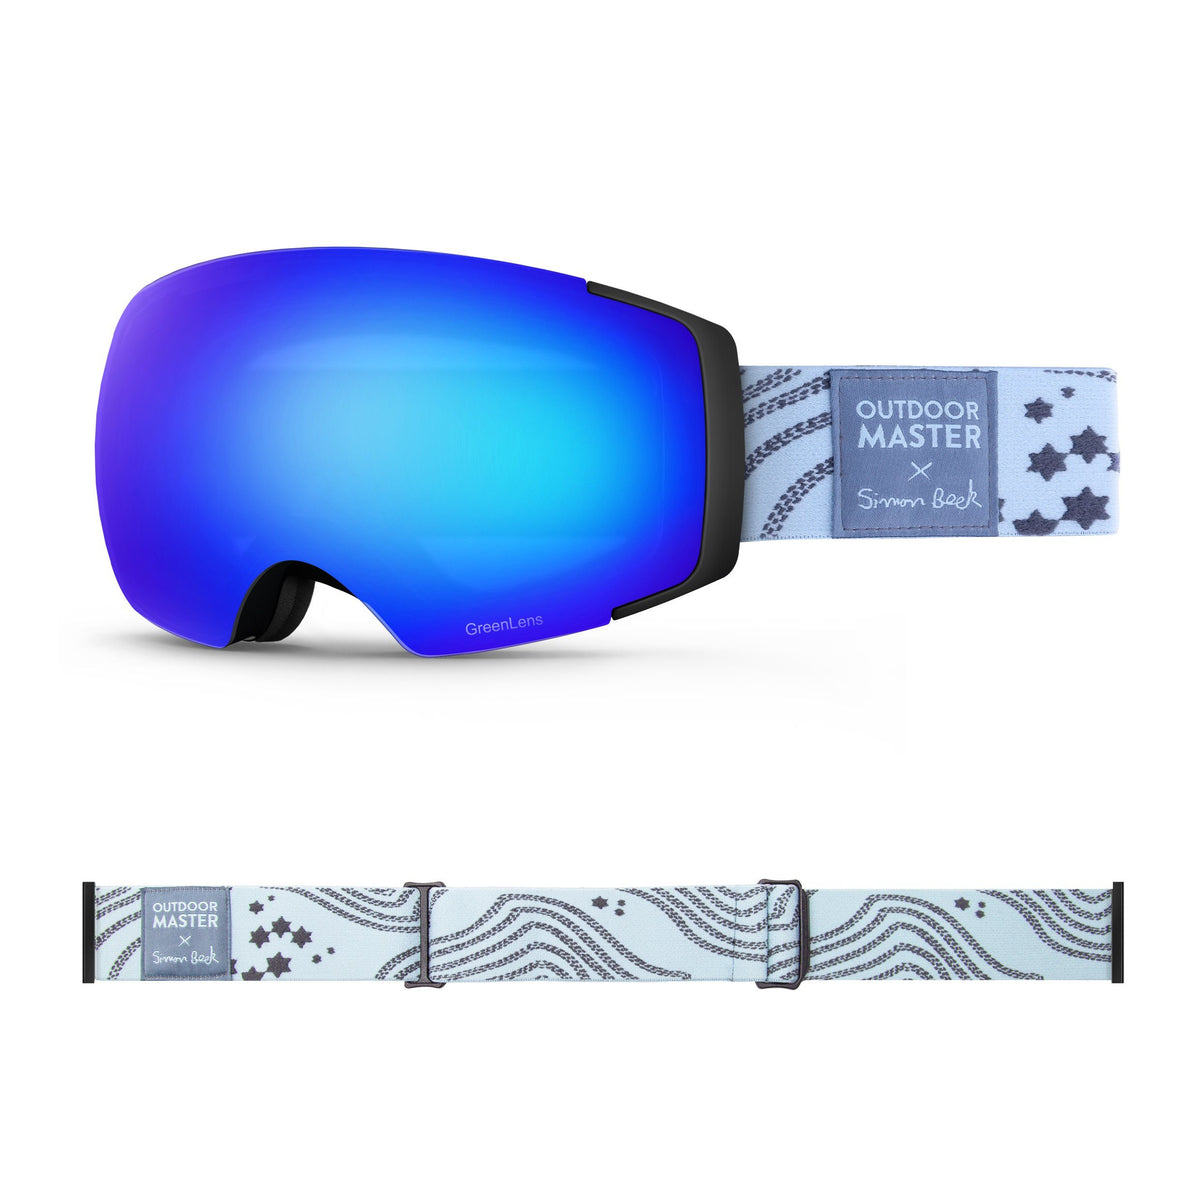 OutdoorMaster x Simon Beck Ski Goggles Pro Series - Snowshoeing Art Limited Edition OutdoorMaster GreenLens VLT 15% TAC Grey with REVO Blue Polarized Star Road-Lightsteelblue